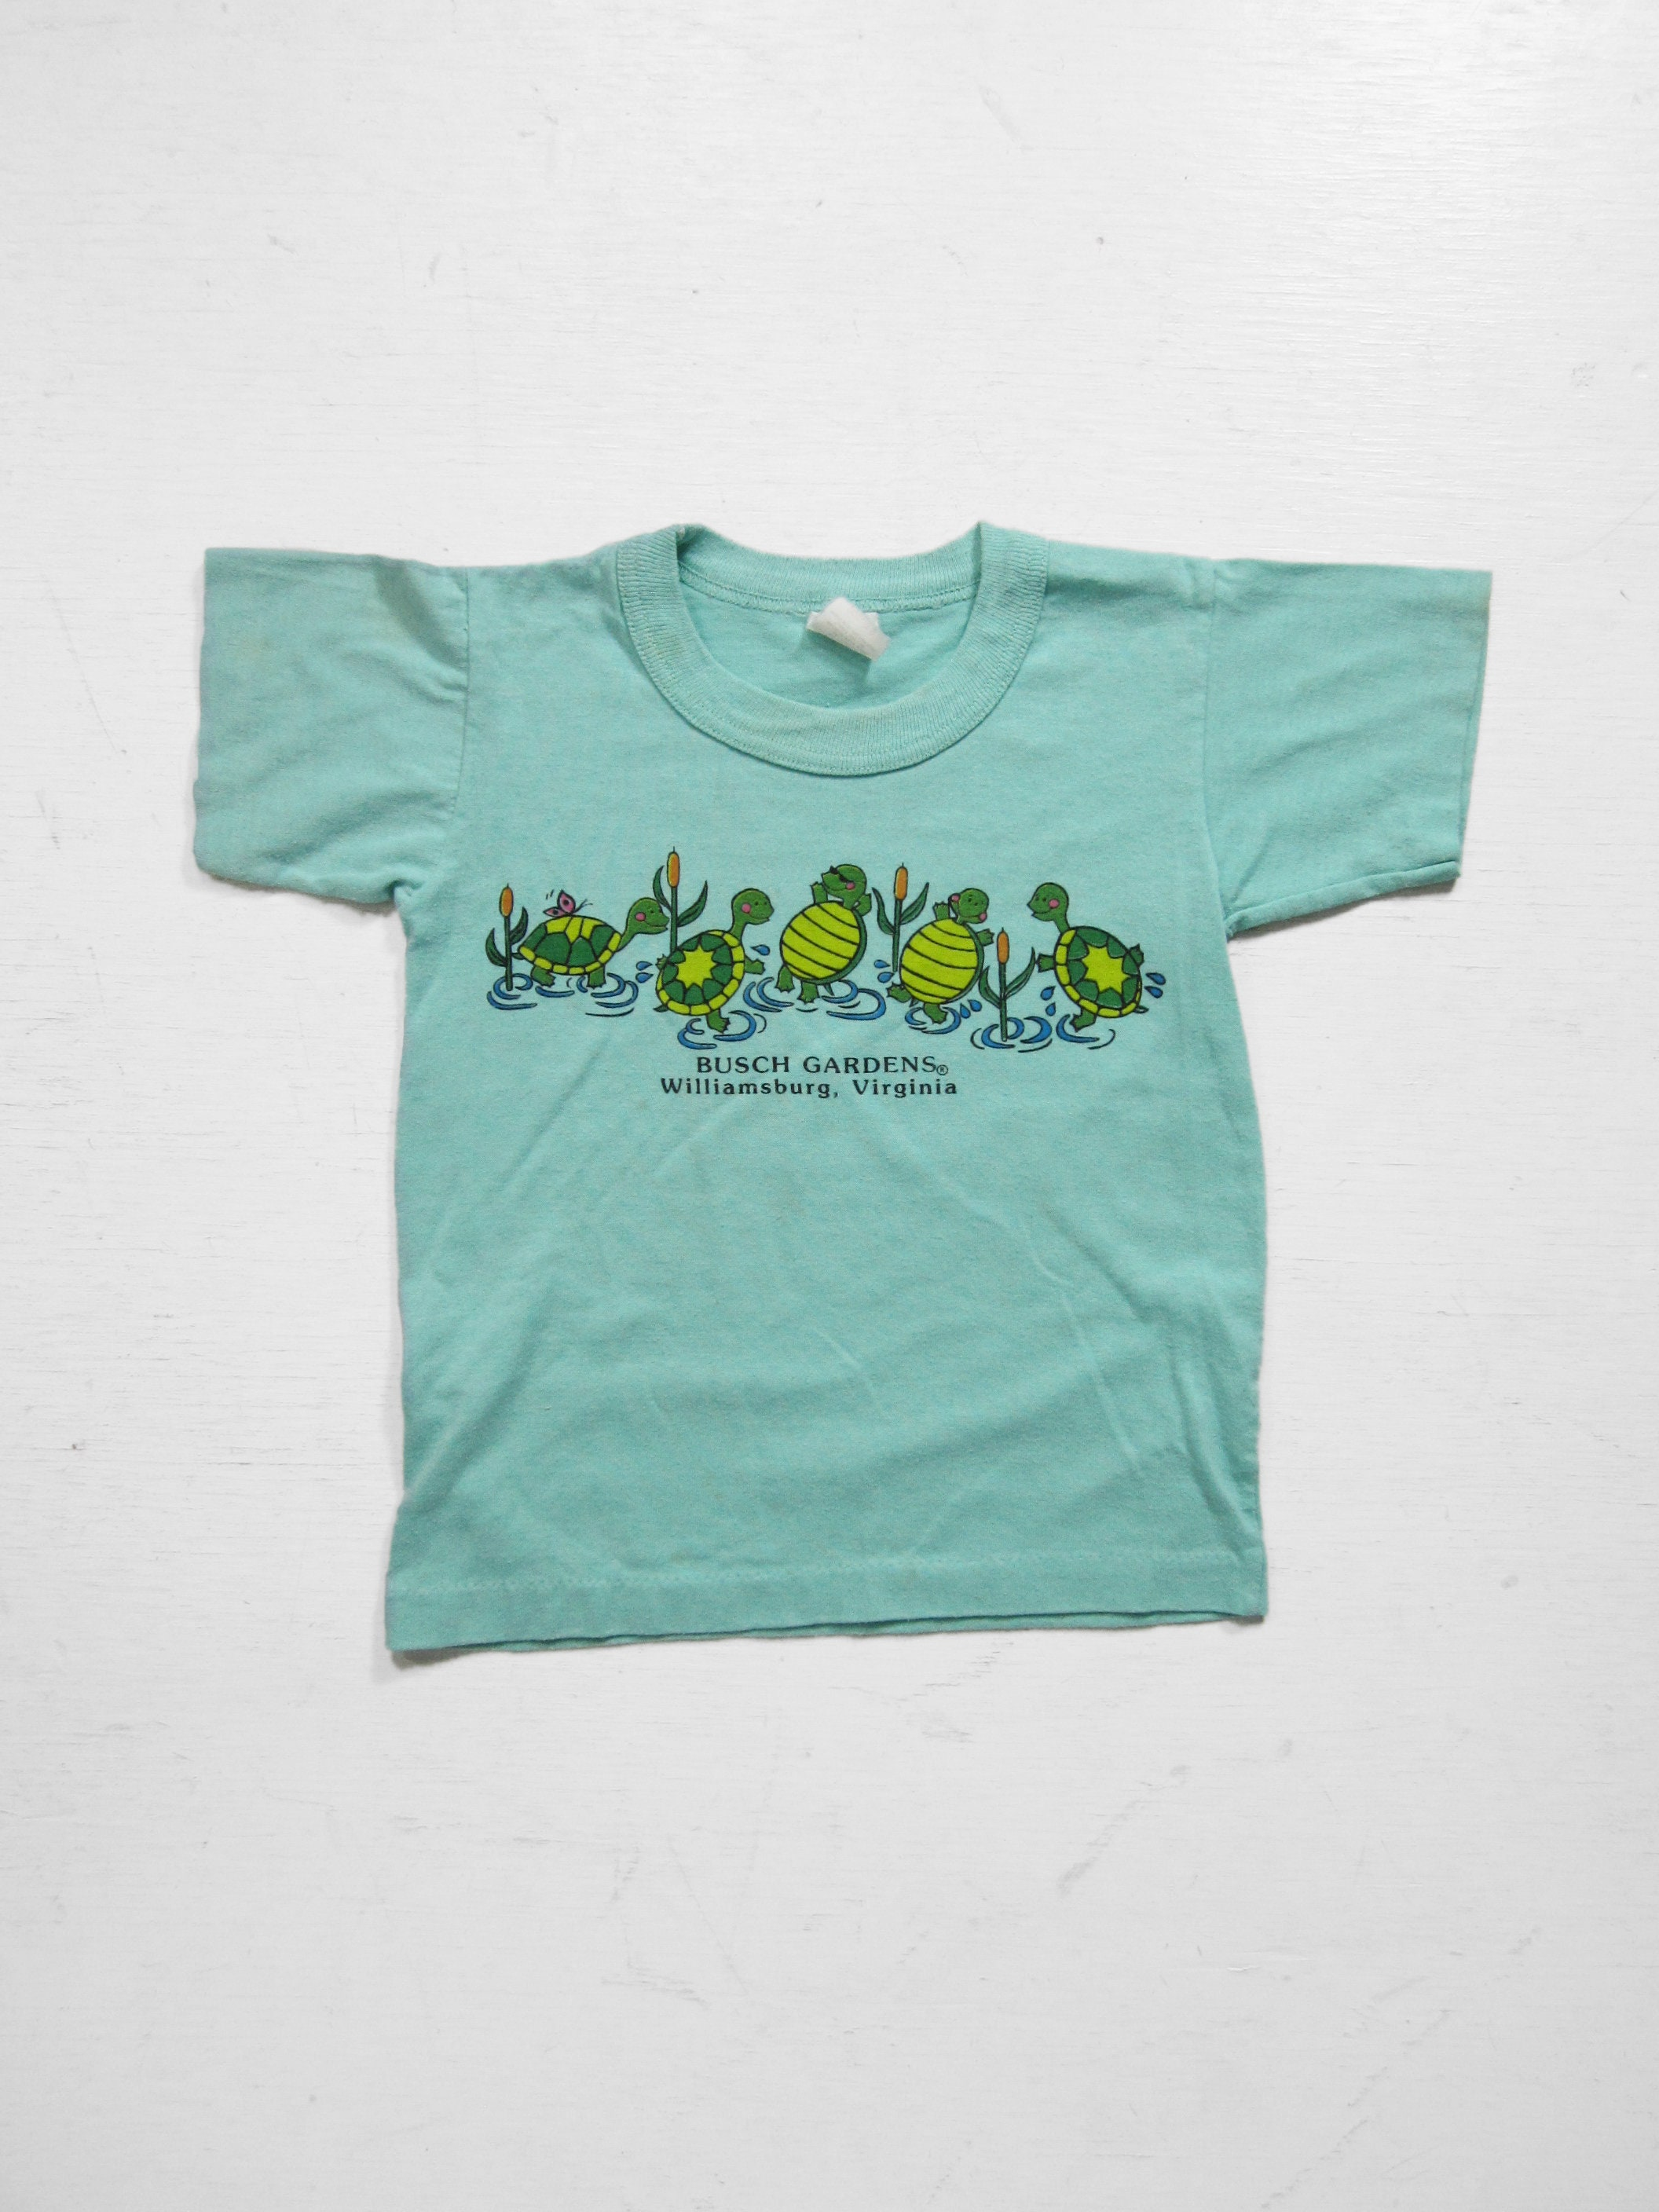 80s Tops, Shirts, T-shirts, Blouse   90s T-shirts Vintage Busch Gardens T-Shirt Turtle Kids Tee - Small 6-8 $10.00 AT vintagedancer.com